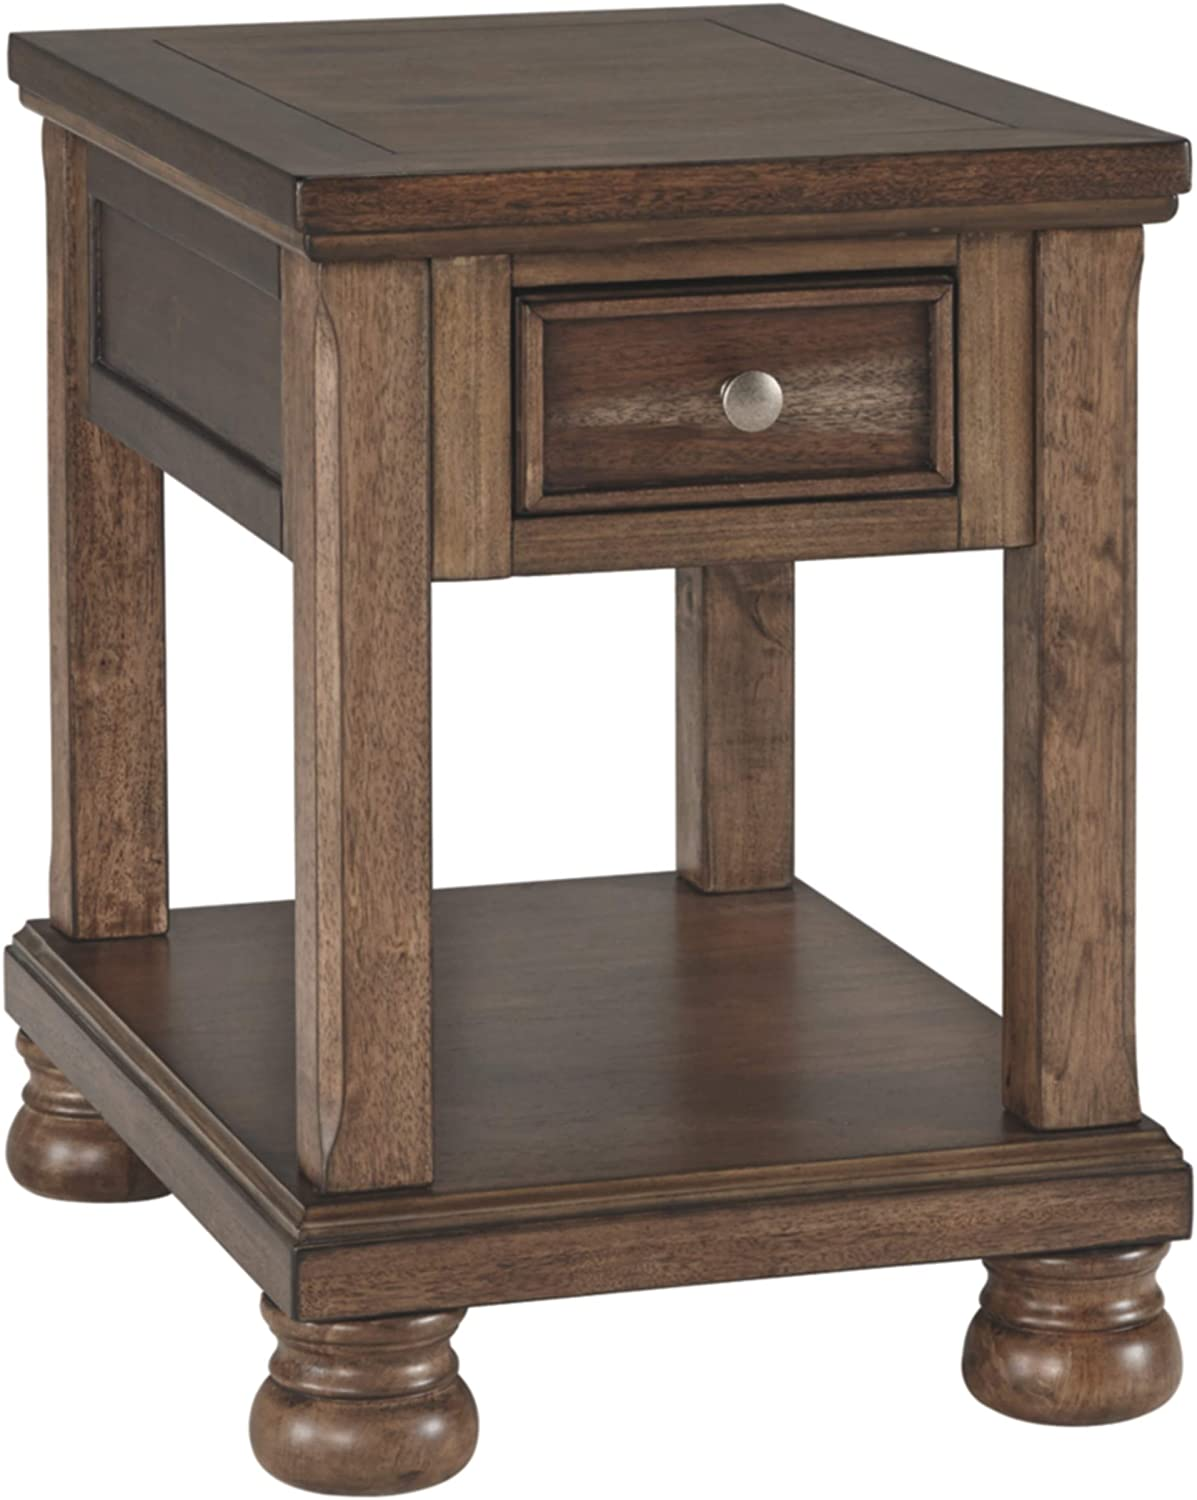 Ashley Furniture Signature Design - Flynnter Casual Chair Side End Table with Storage - Medium Brown